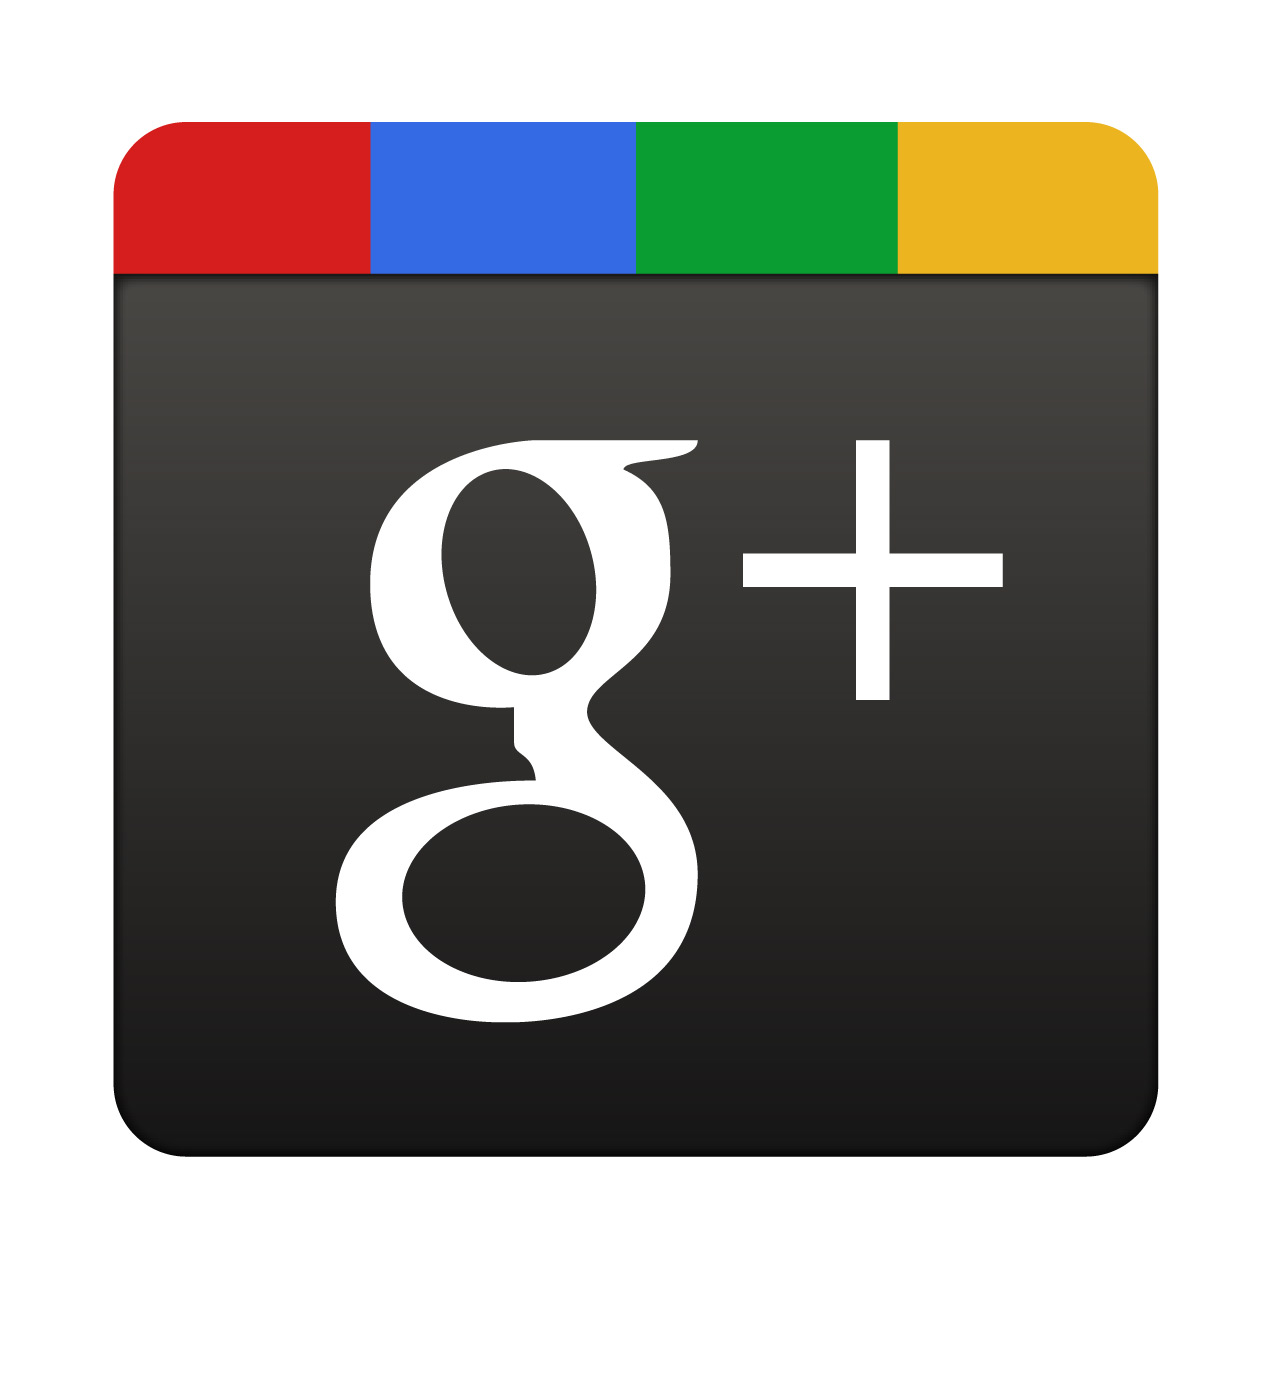 Users Spend Less Time on Google+ Than MySpace, Pinterest